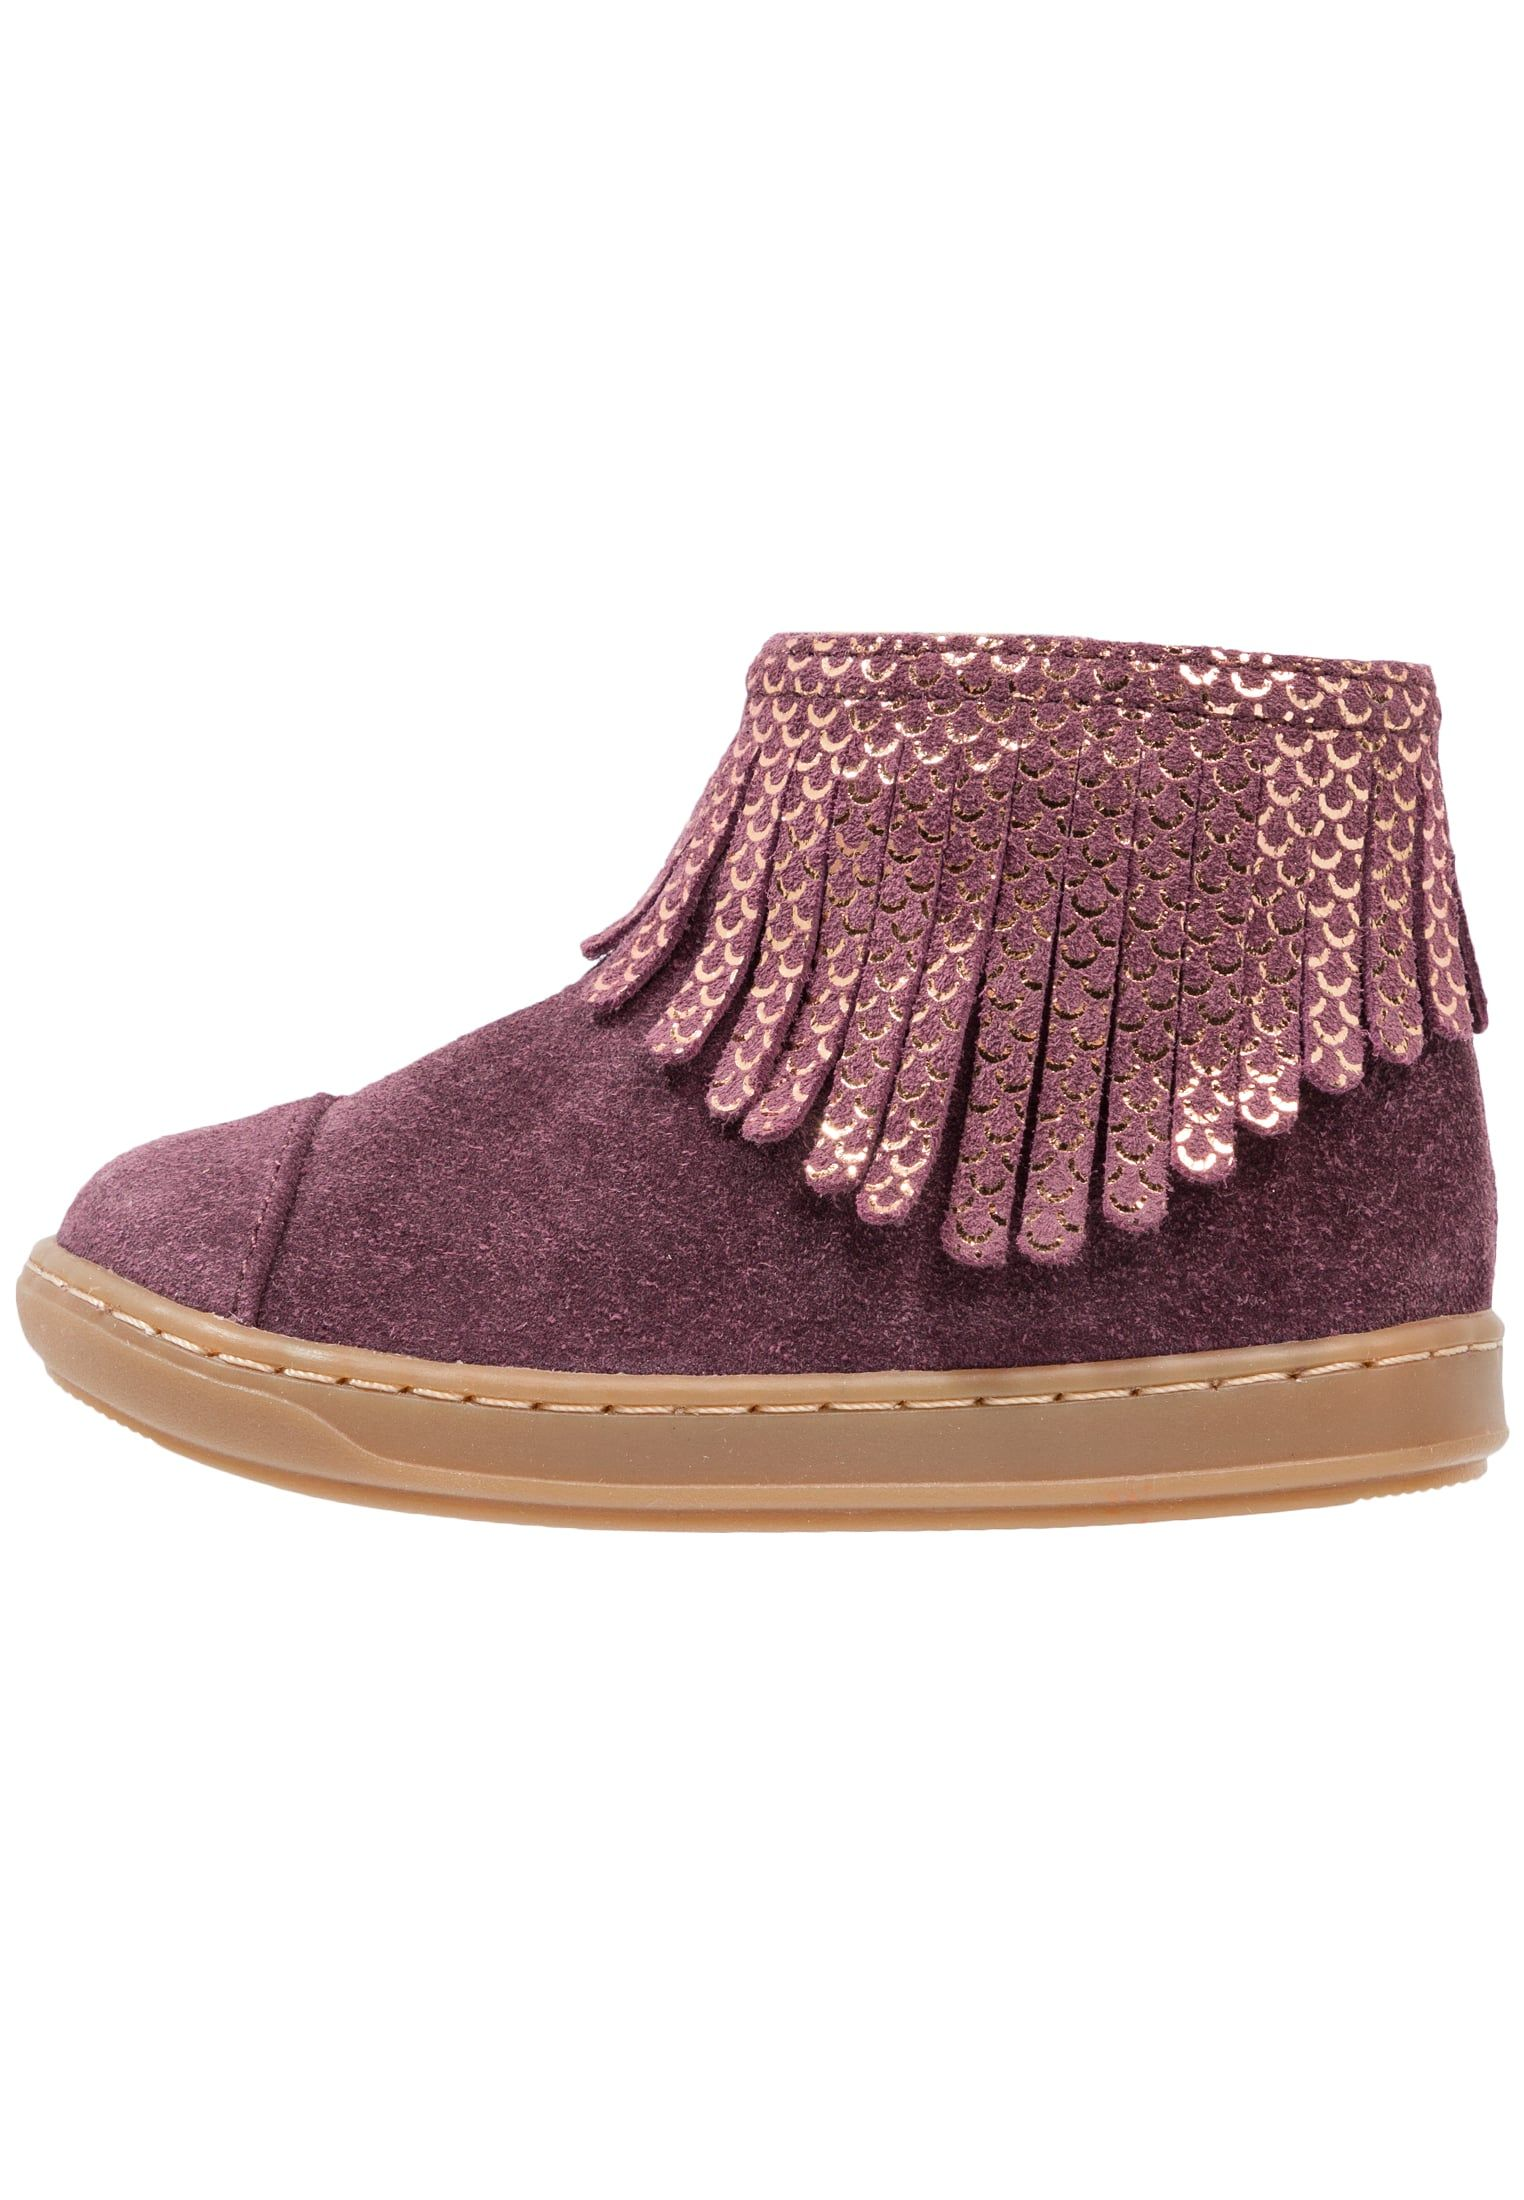 BOUBA FRINGE - Chaussures premiers pas - berry   Berry and Father 1869fae7cfa